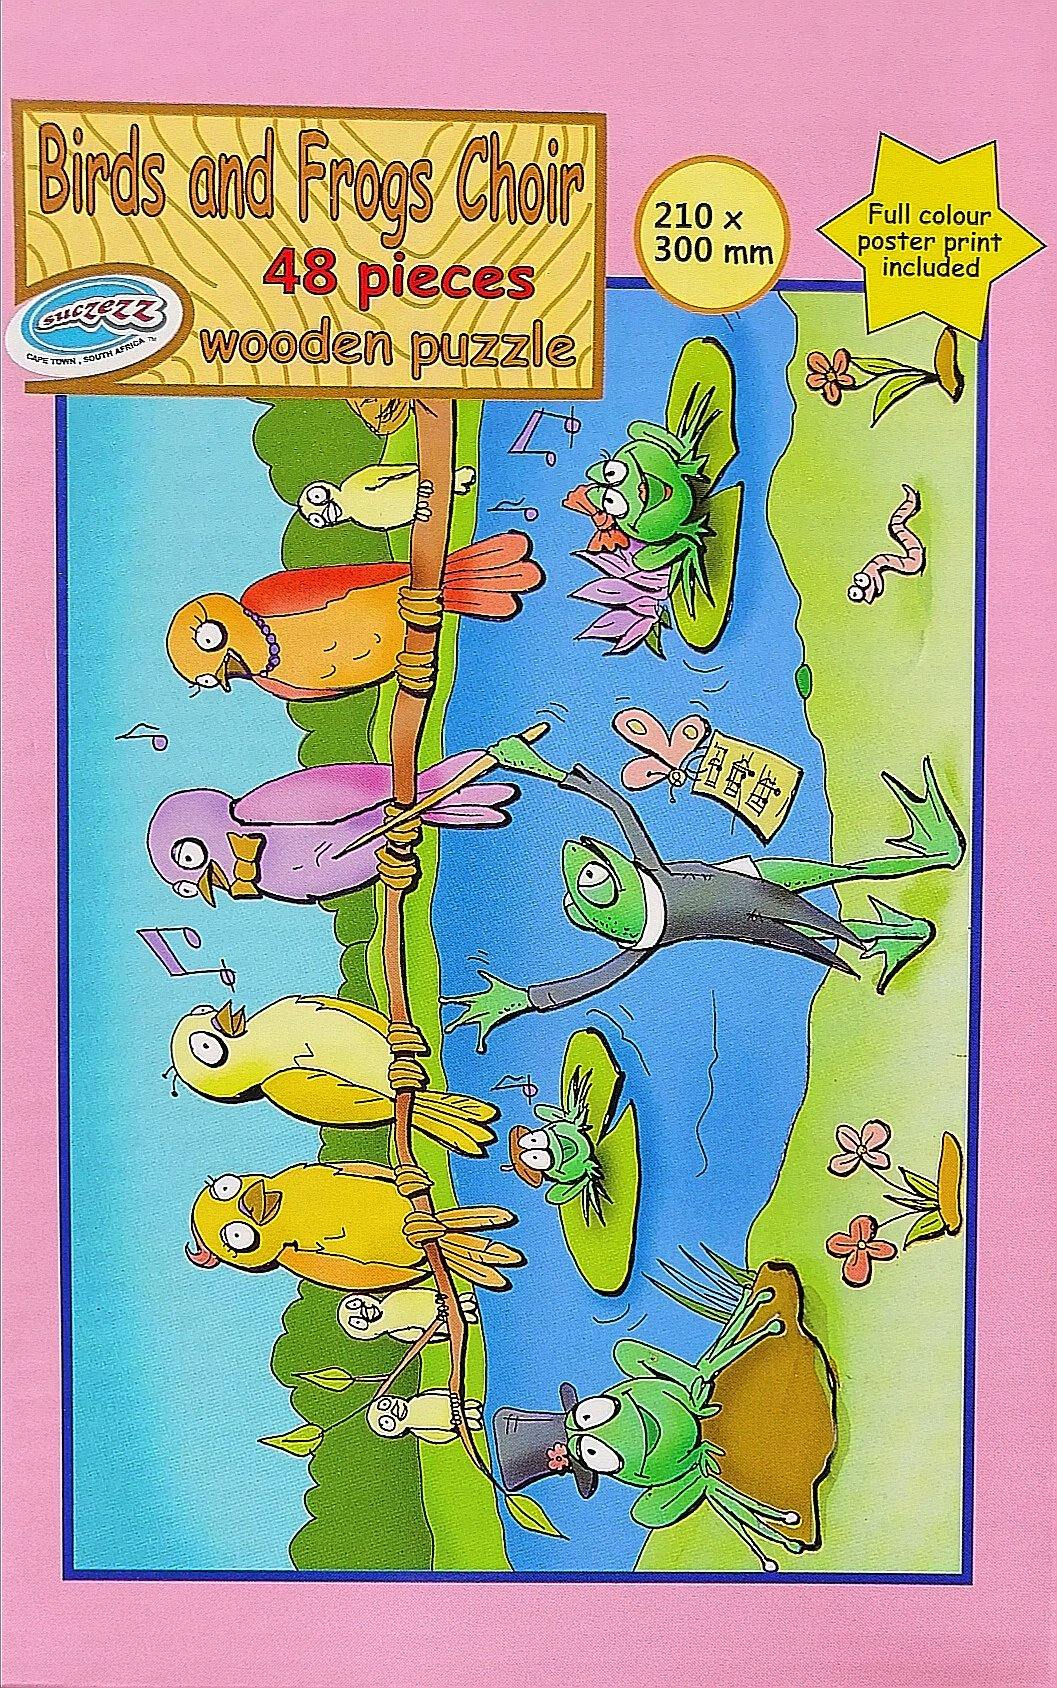 Puzzle - 48 pc Birds and Frogs Choir